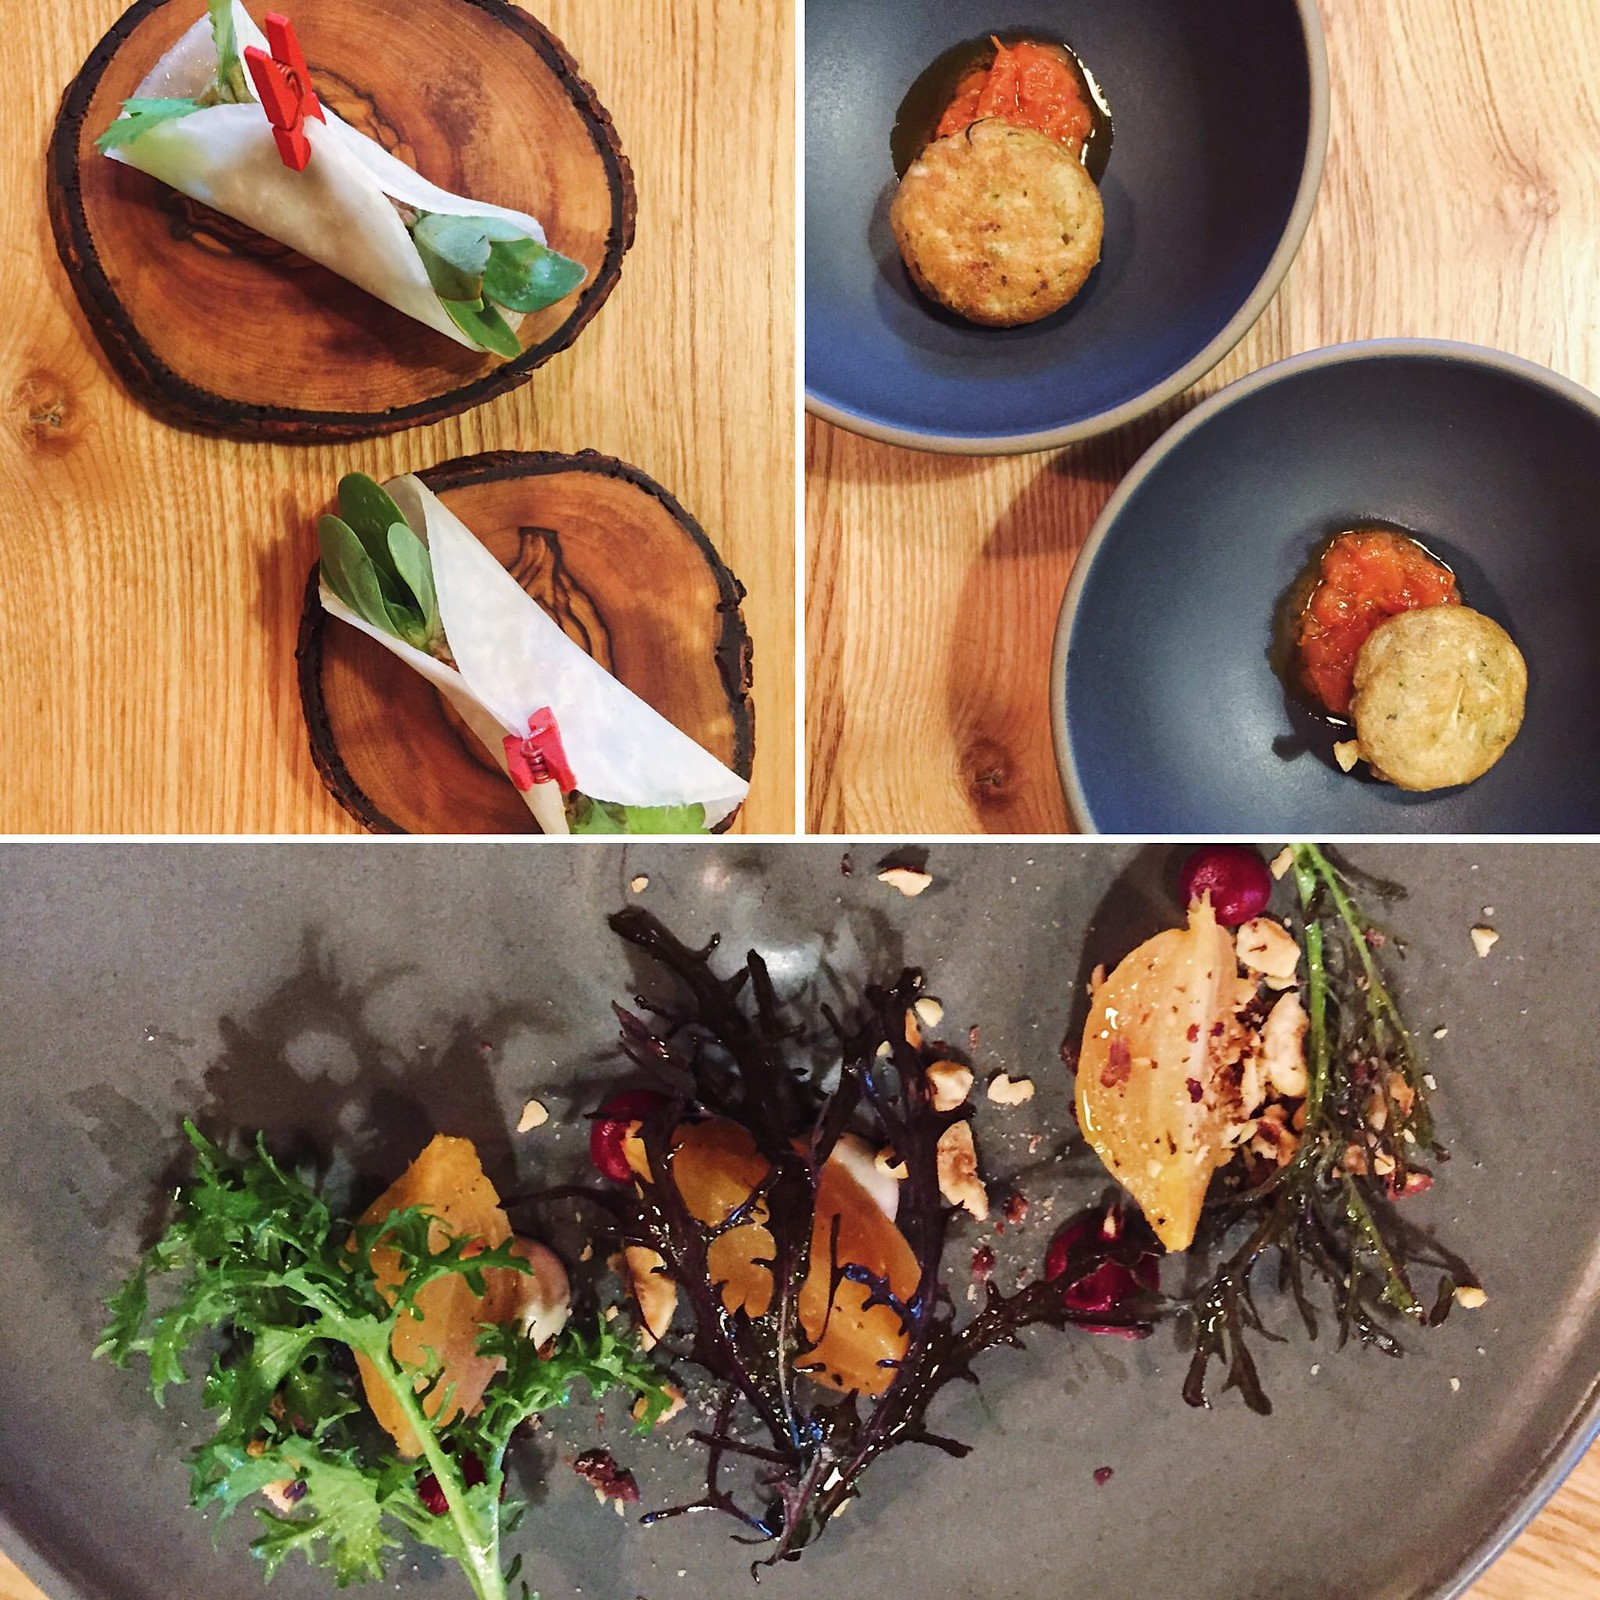 Kohlrabi Taco, Herb Fritter, Beetroot fermented mushroom and filbert at Farm Spirit